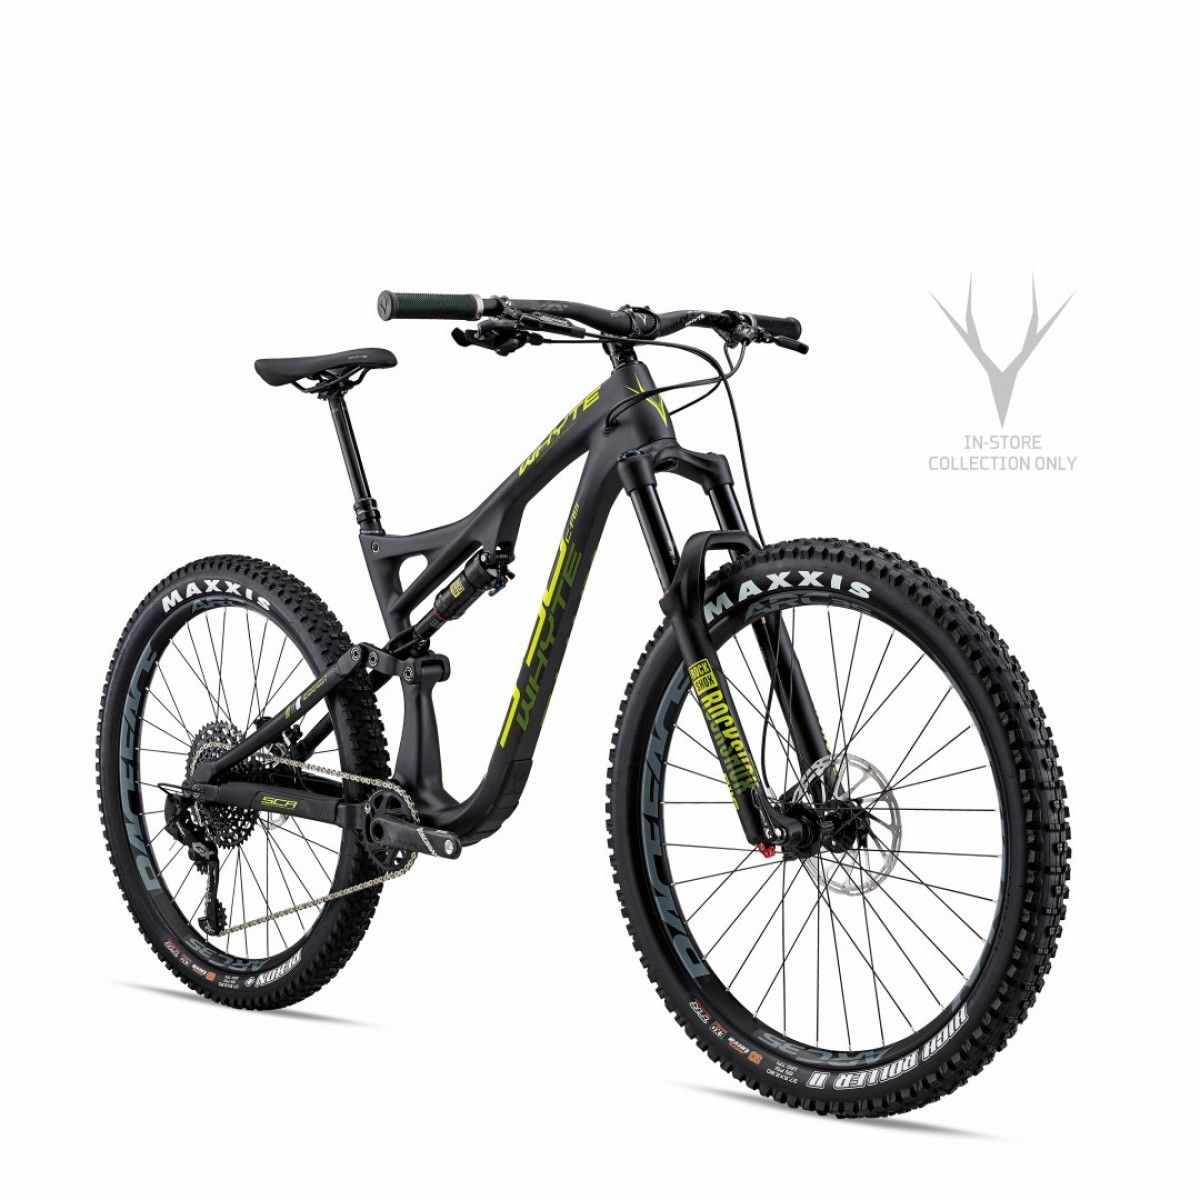 Mountain Bikes Buy Mountain Bikes Online Mountain Bikes Walmart Mountain Bike Amazon Mountain Bike Store Full Suspension M Bike Reviews Bicycle Mountain Biking